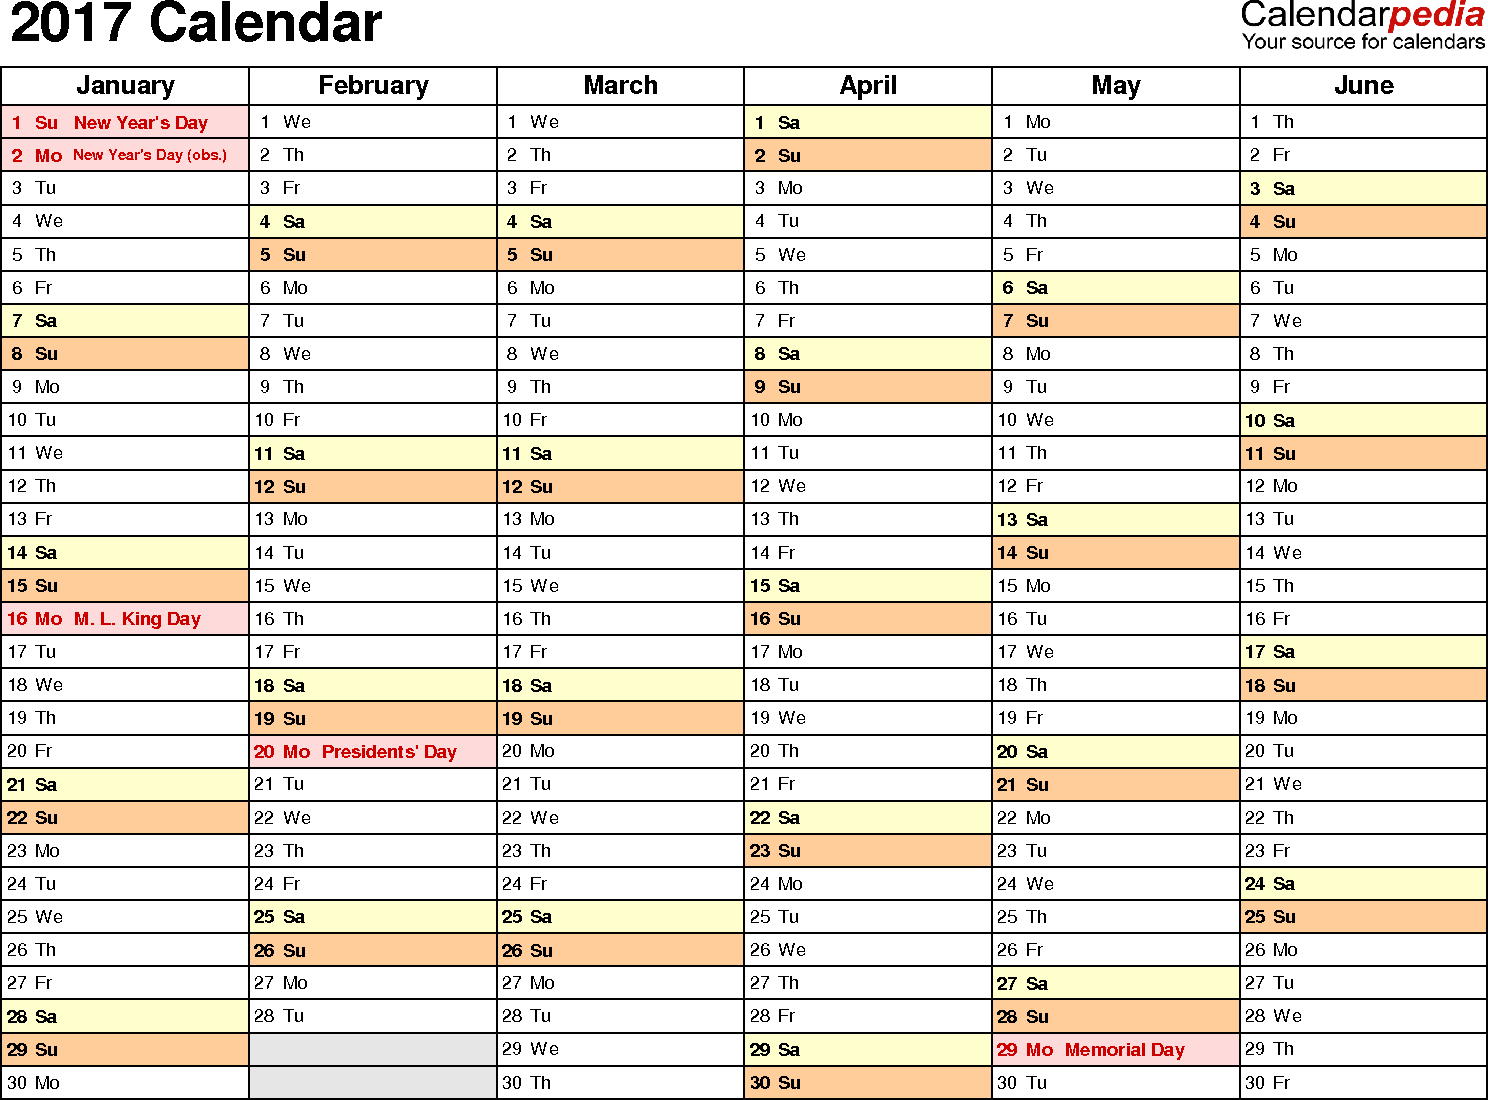 Ediblewildsus  Wonderful  Calendar  Download  Free Printable Excel Templates Xls With Inspiring Template   Calendar For Excel Months Horizontally  Pages Landscape Orientation With Delightful Excel To Word Table Also Excel Formula Guide In Addition Excel Vba Create Text File And Excel Equal To Or Greater Than As Well As How Are Dates Stored In Excel Additionally T Shirt Order Form Excel From Calendarpediacom With Ediblewildsus  Inspiring  Calendar  Download  Free Printable Excel Templates Xls With Delightful Template   Calendar For Excel Months Horizontally  Pages Landscape Orientation And Wonderful Excel To Word Table Also Excel Formula Guide In Addition Excel Vba Create Text File From Calendarpediacom